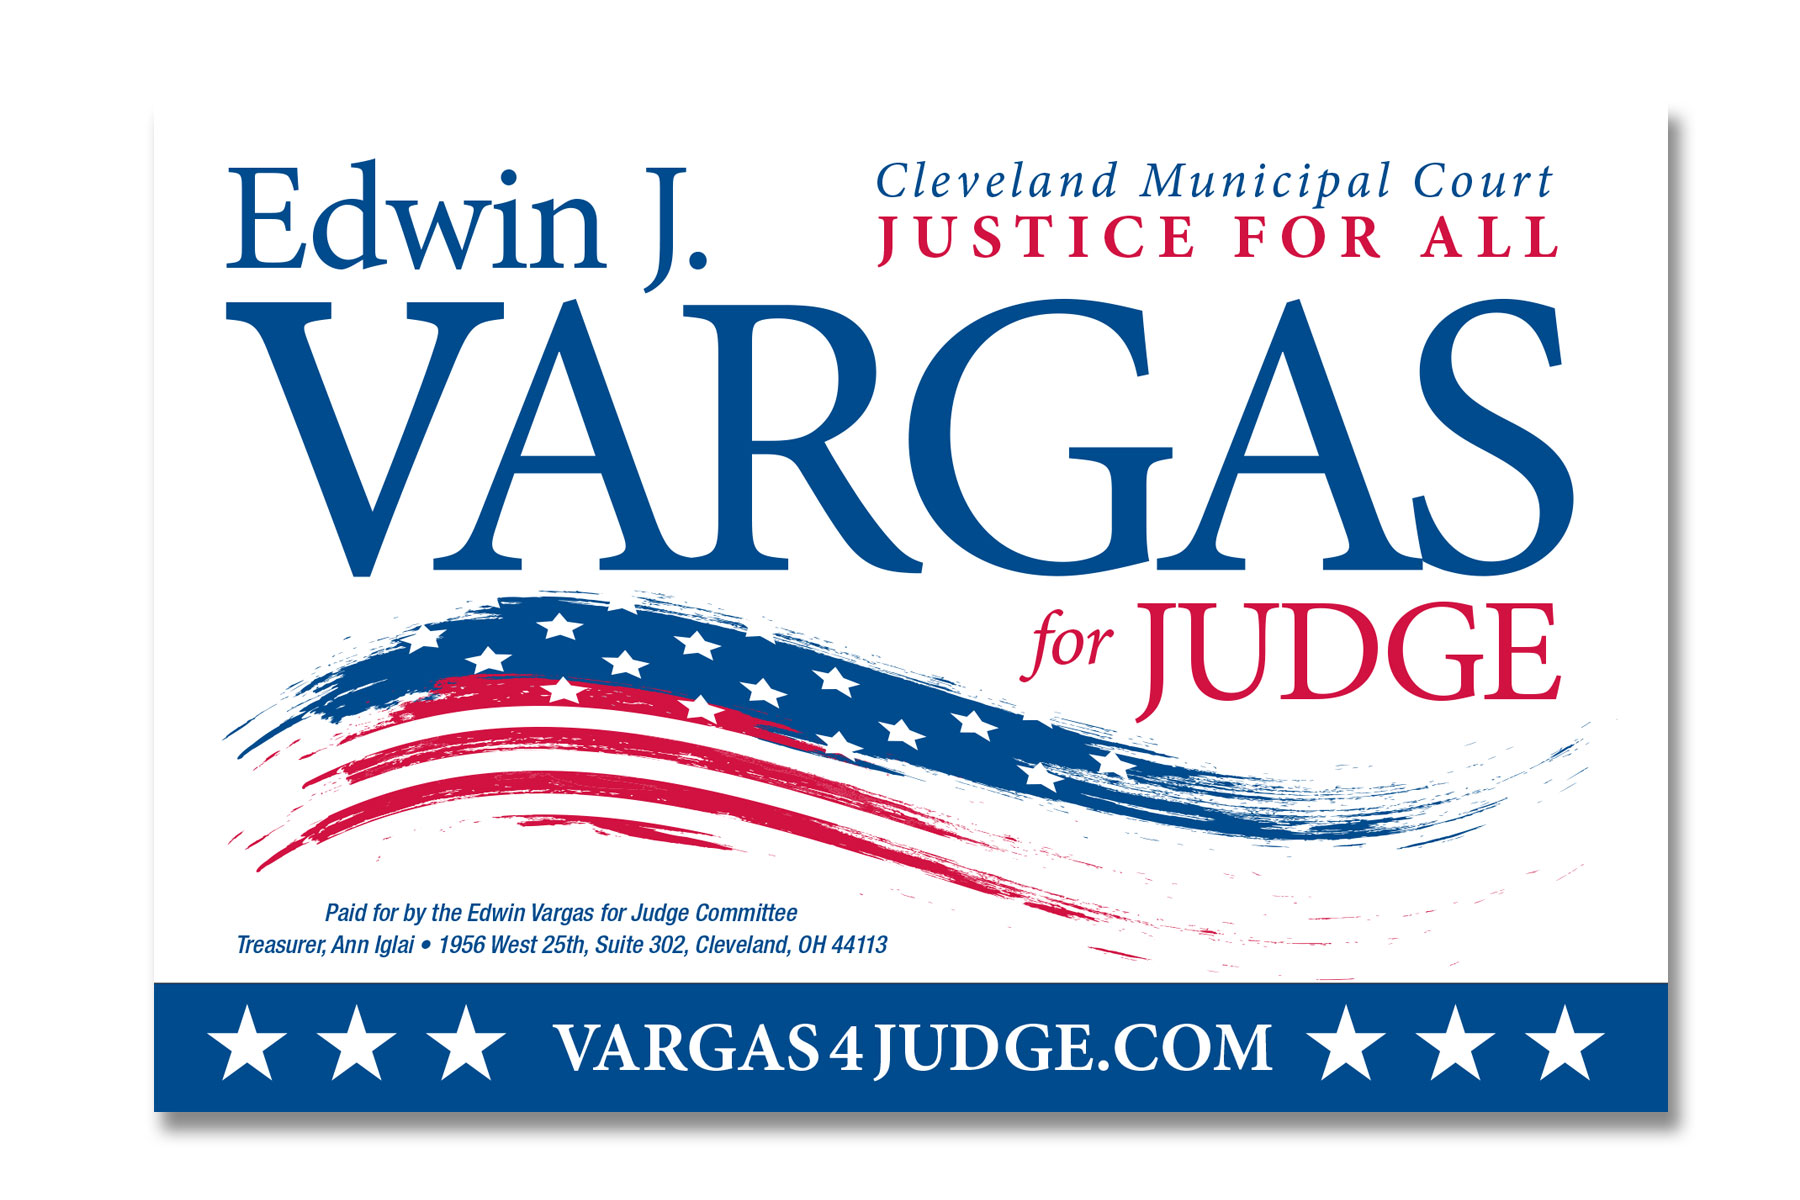 Vagas for Judge